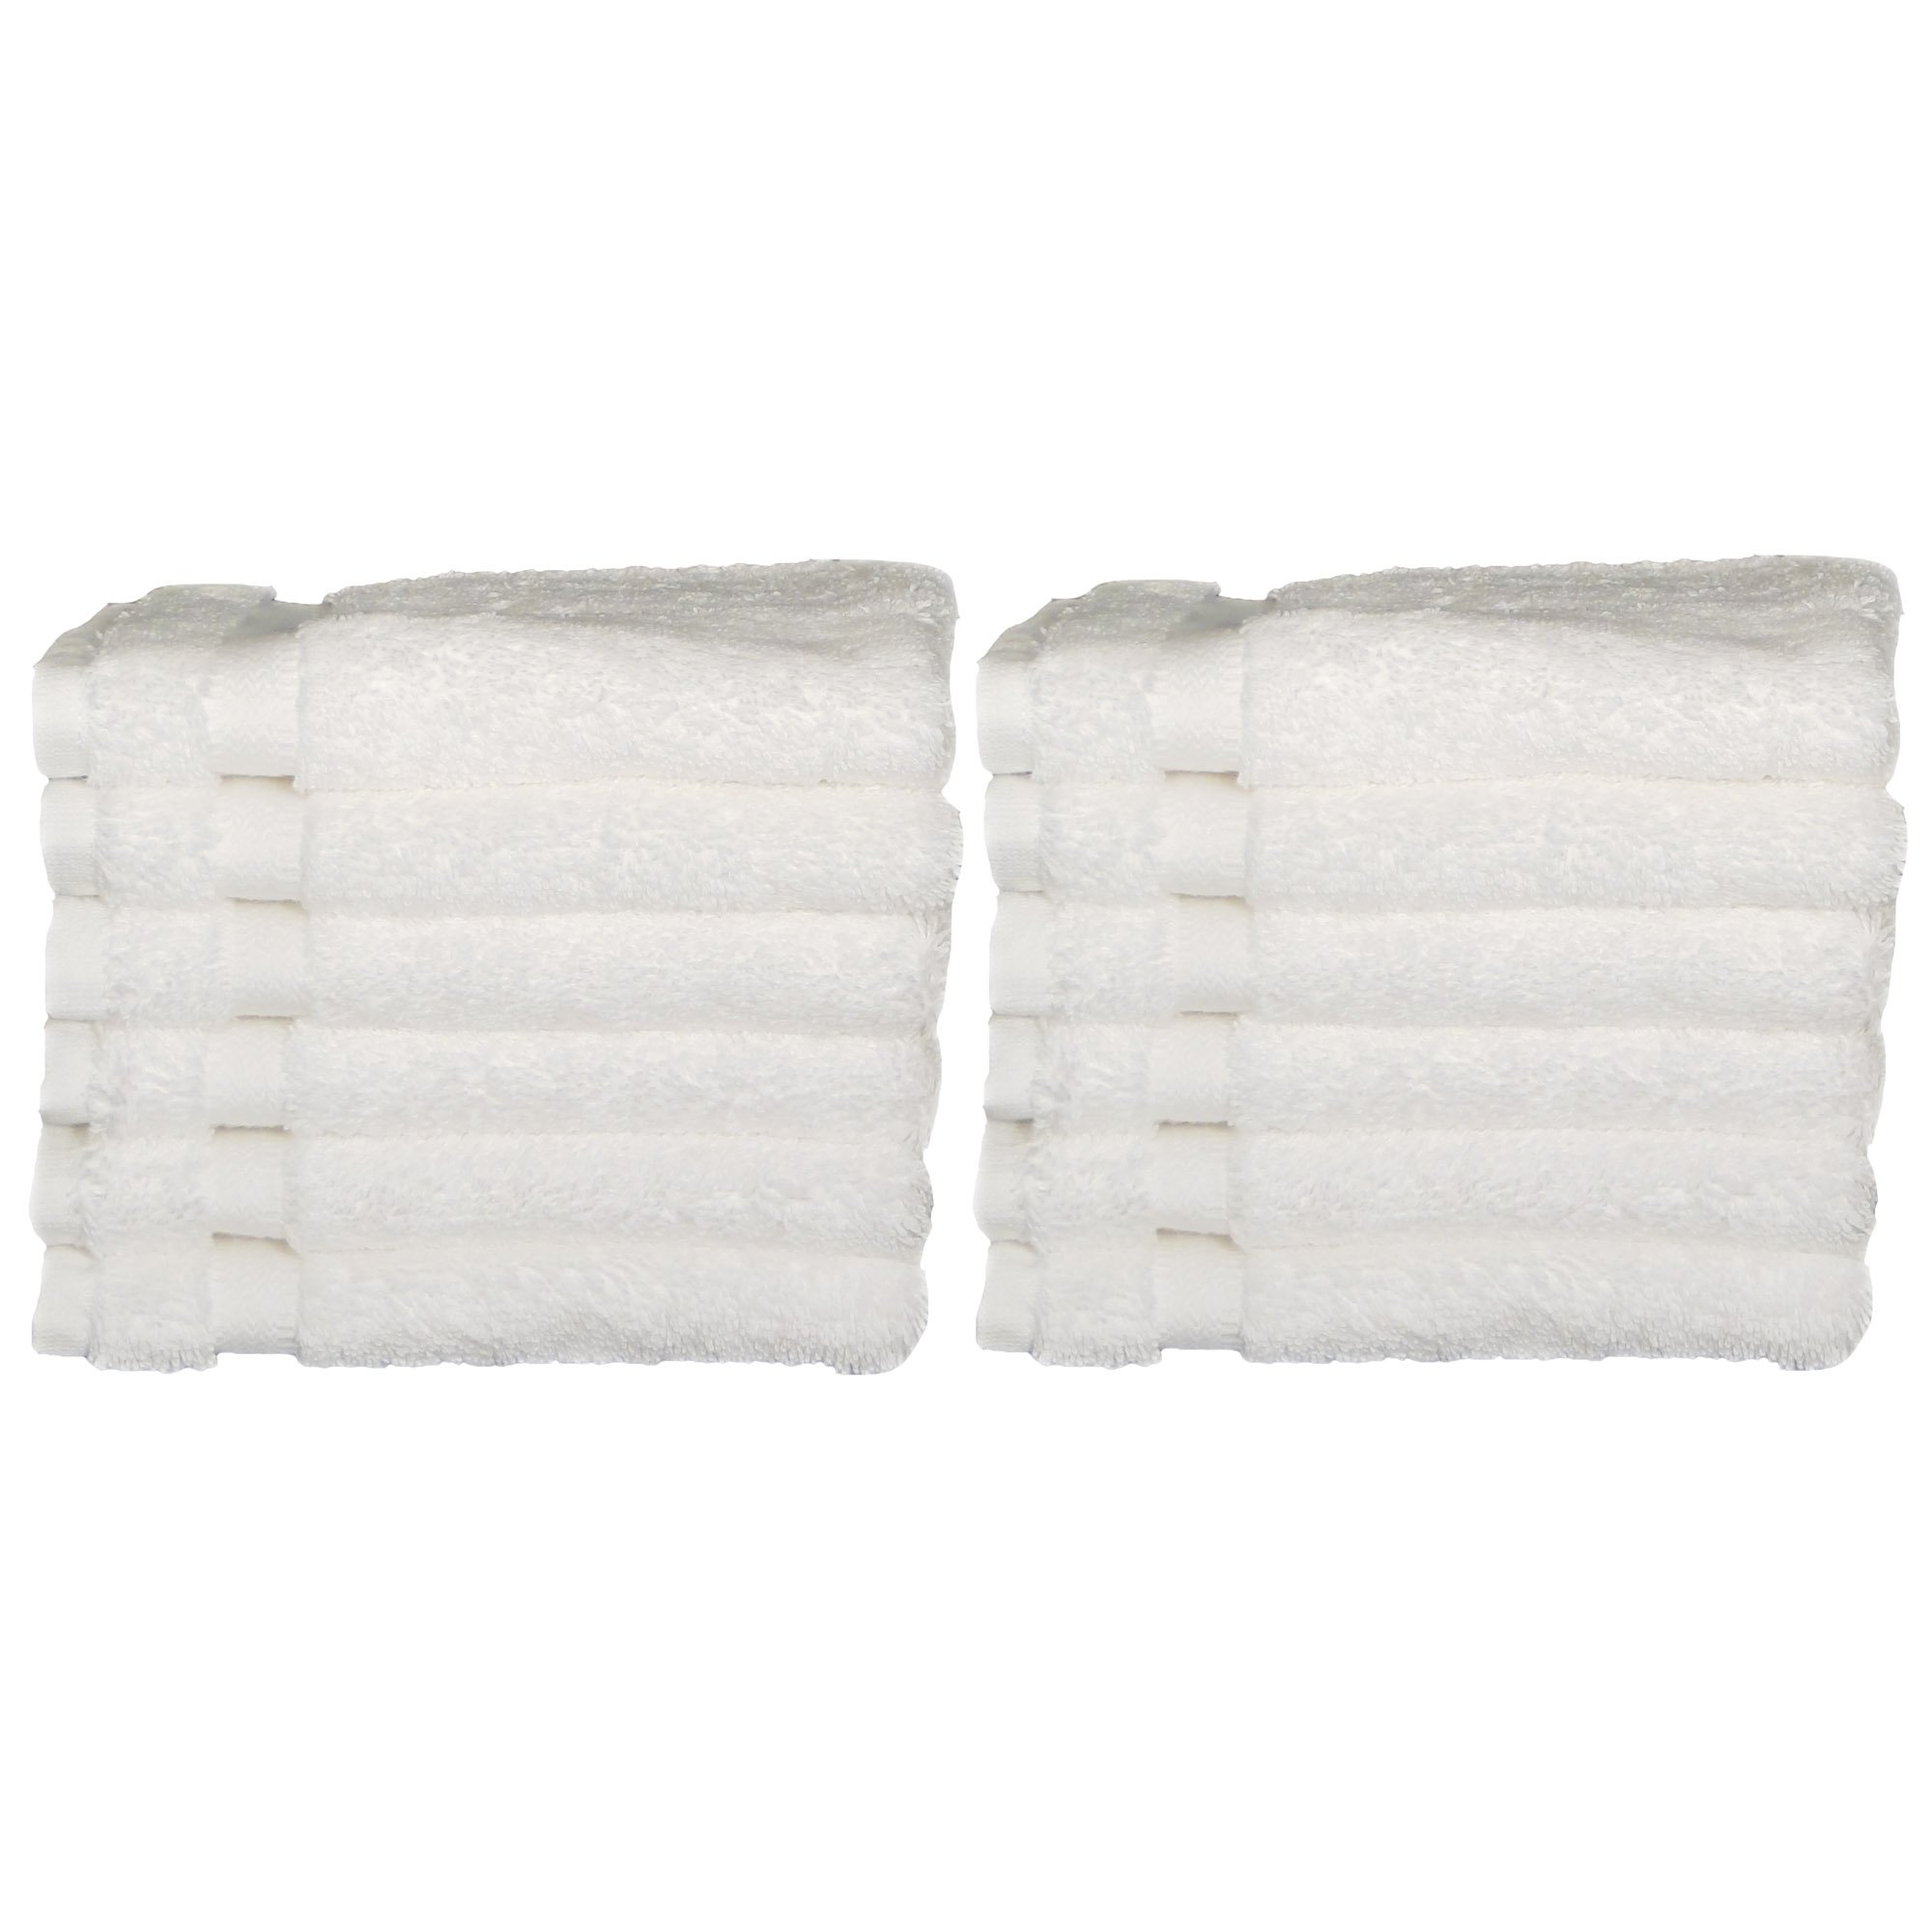 Chelsea Collection by Baltic Linen 100-Percent Turkish Cotton 12-Pack Wash Cloths, 13 by 13-Inch, White